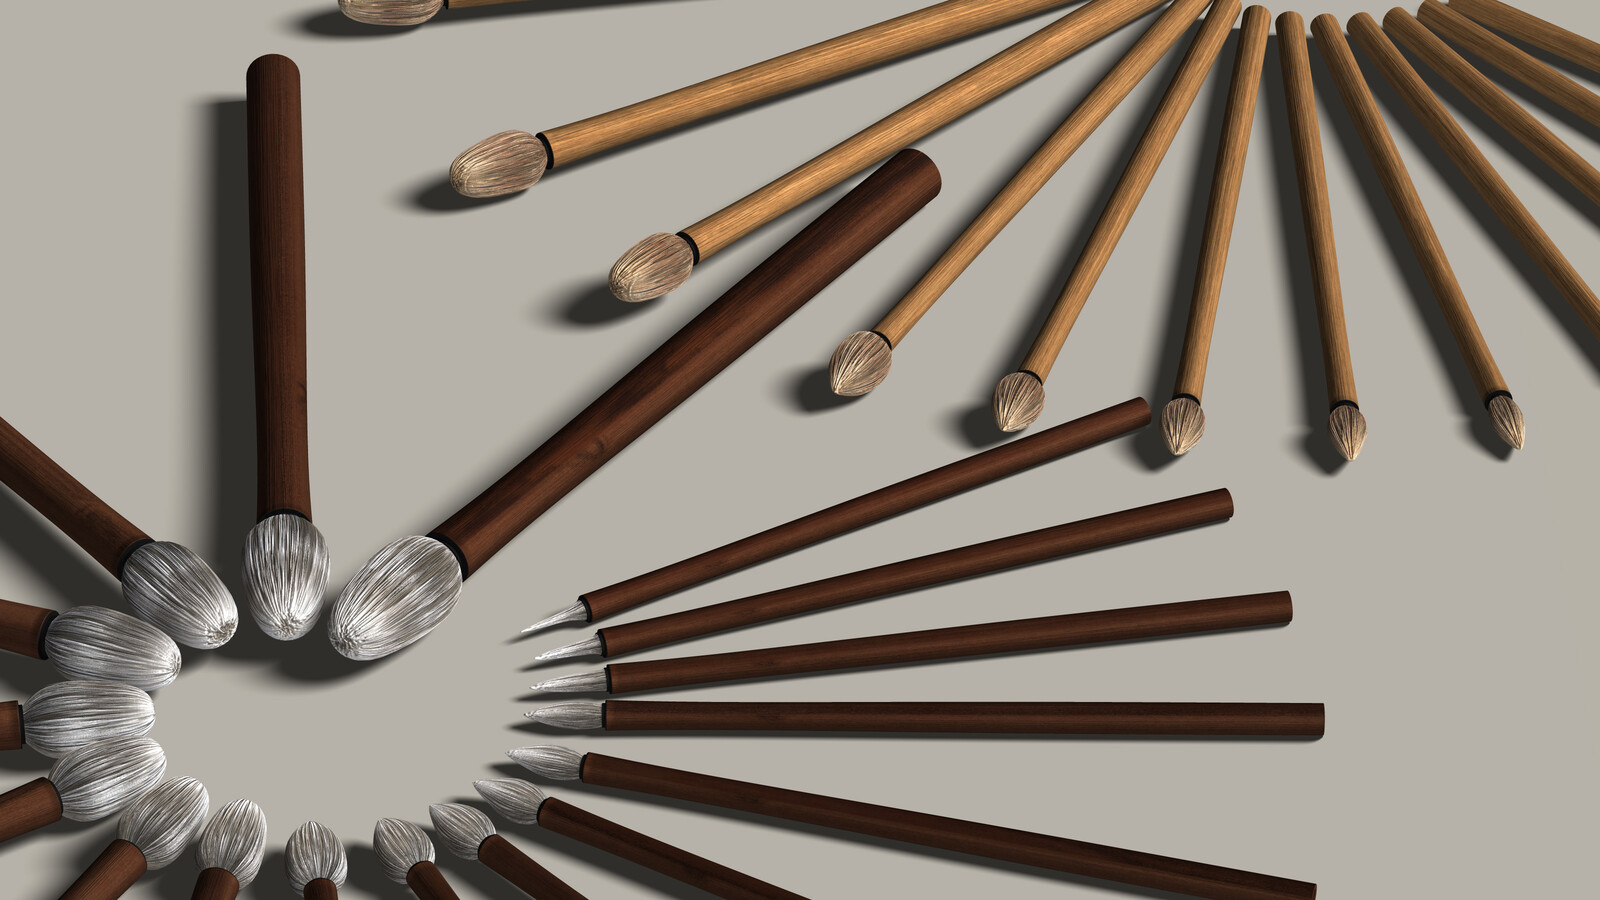 3D Model: Medium-Tipped Brushes